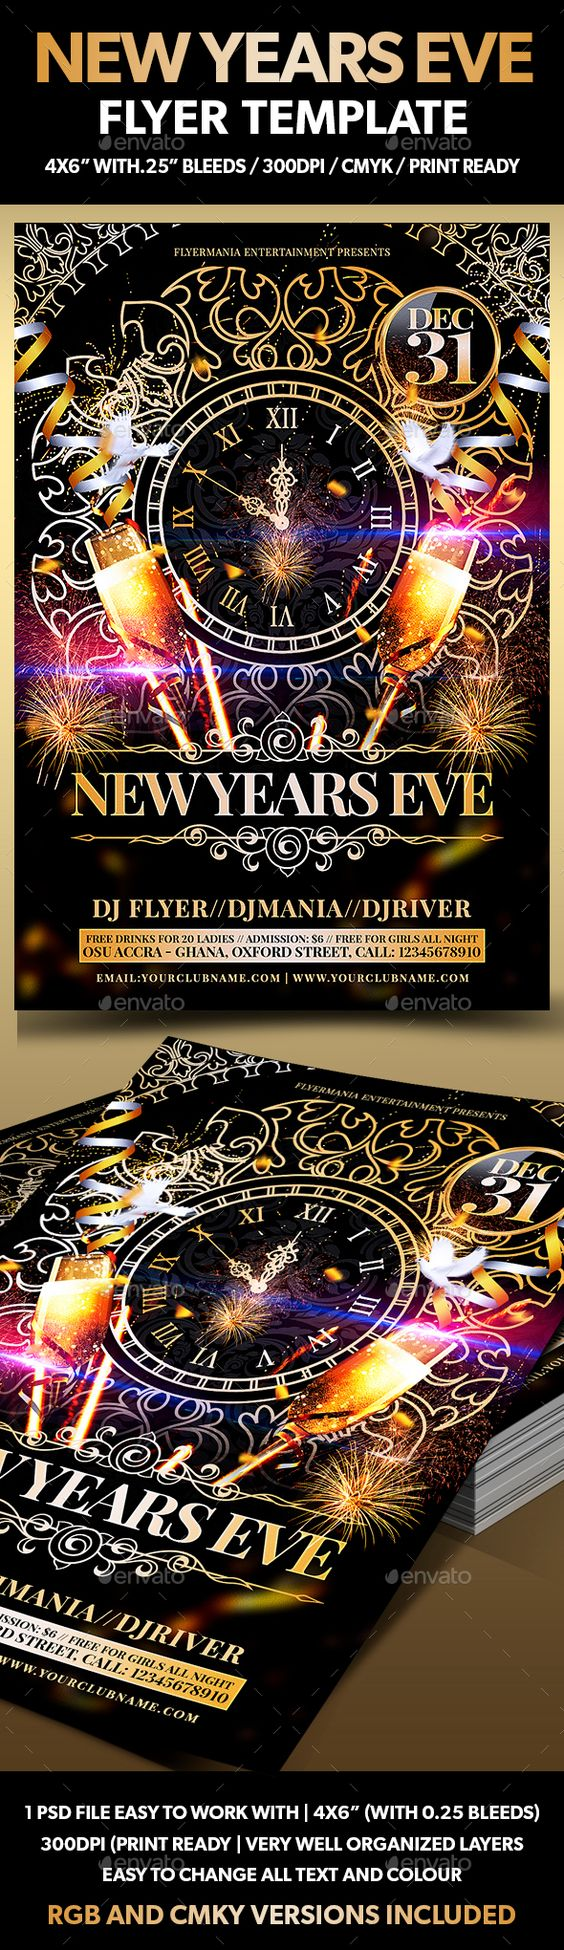 New Years Eve Flyer Template – Free New Years Eve Flyer Template